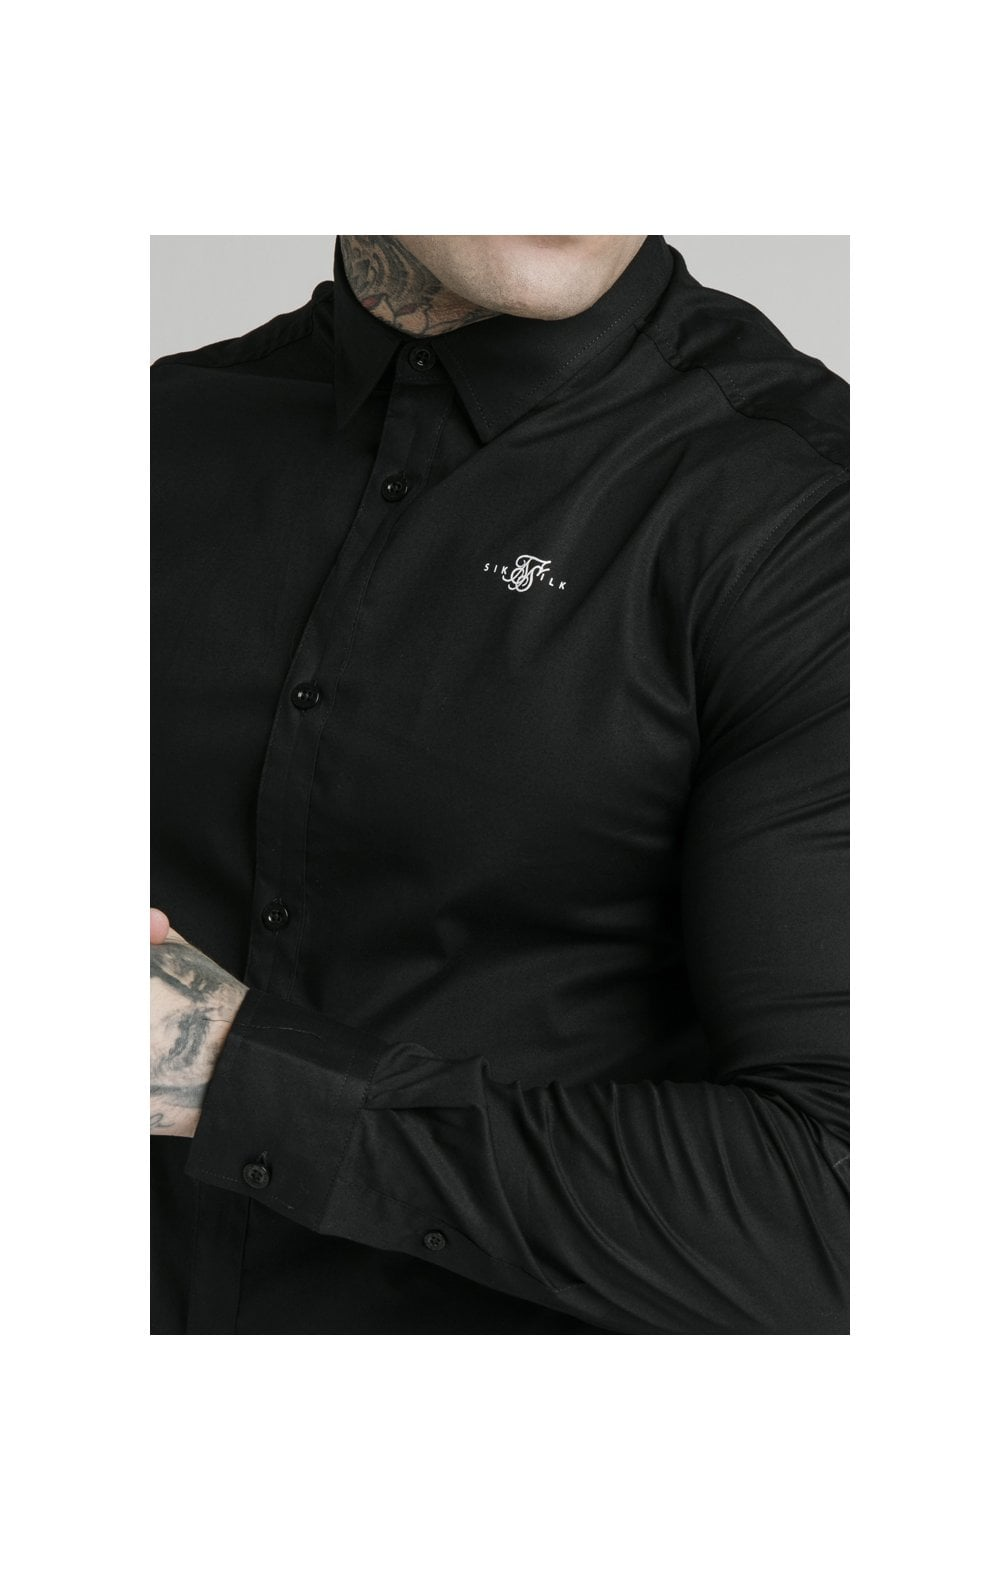 SikSilk L/S Standard Collar Shirt - Black (5)